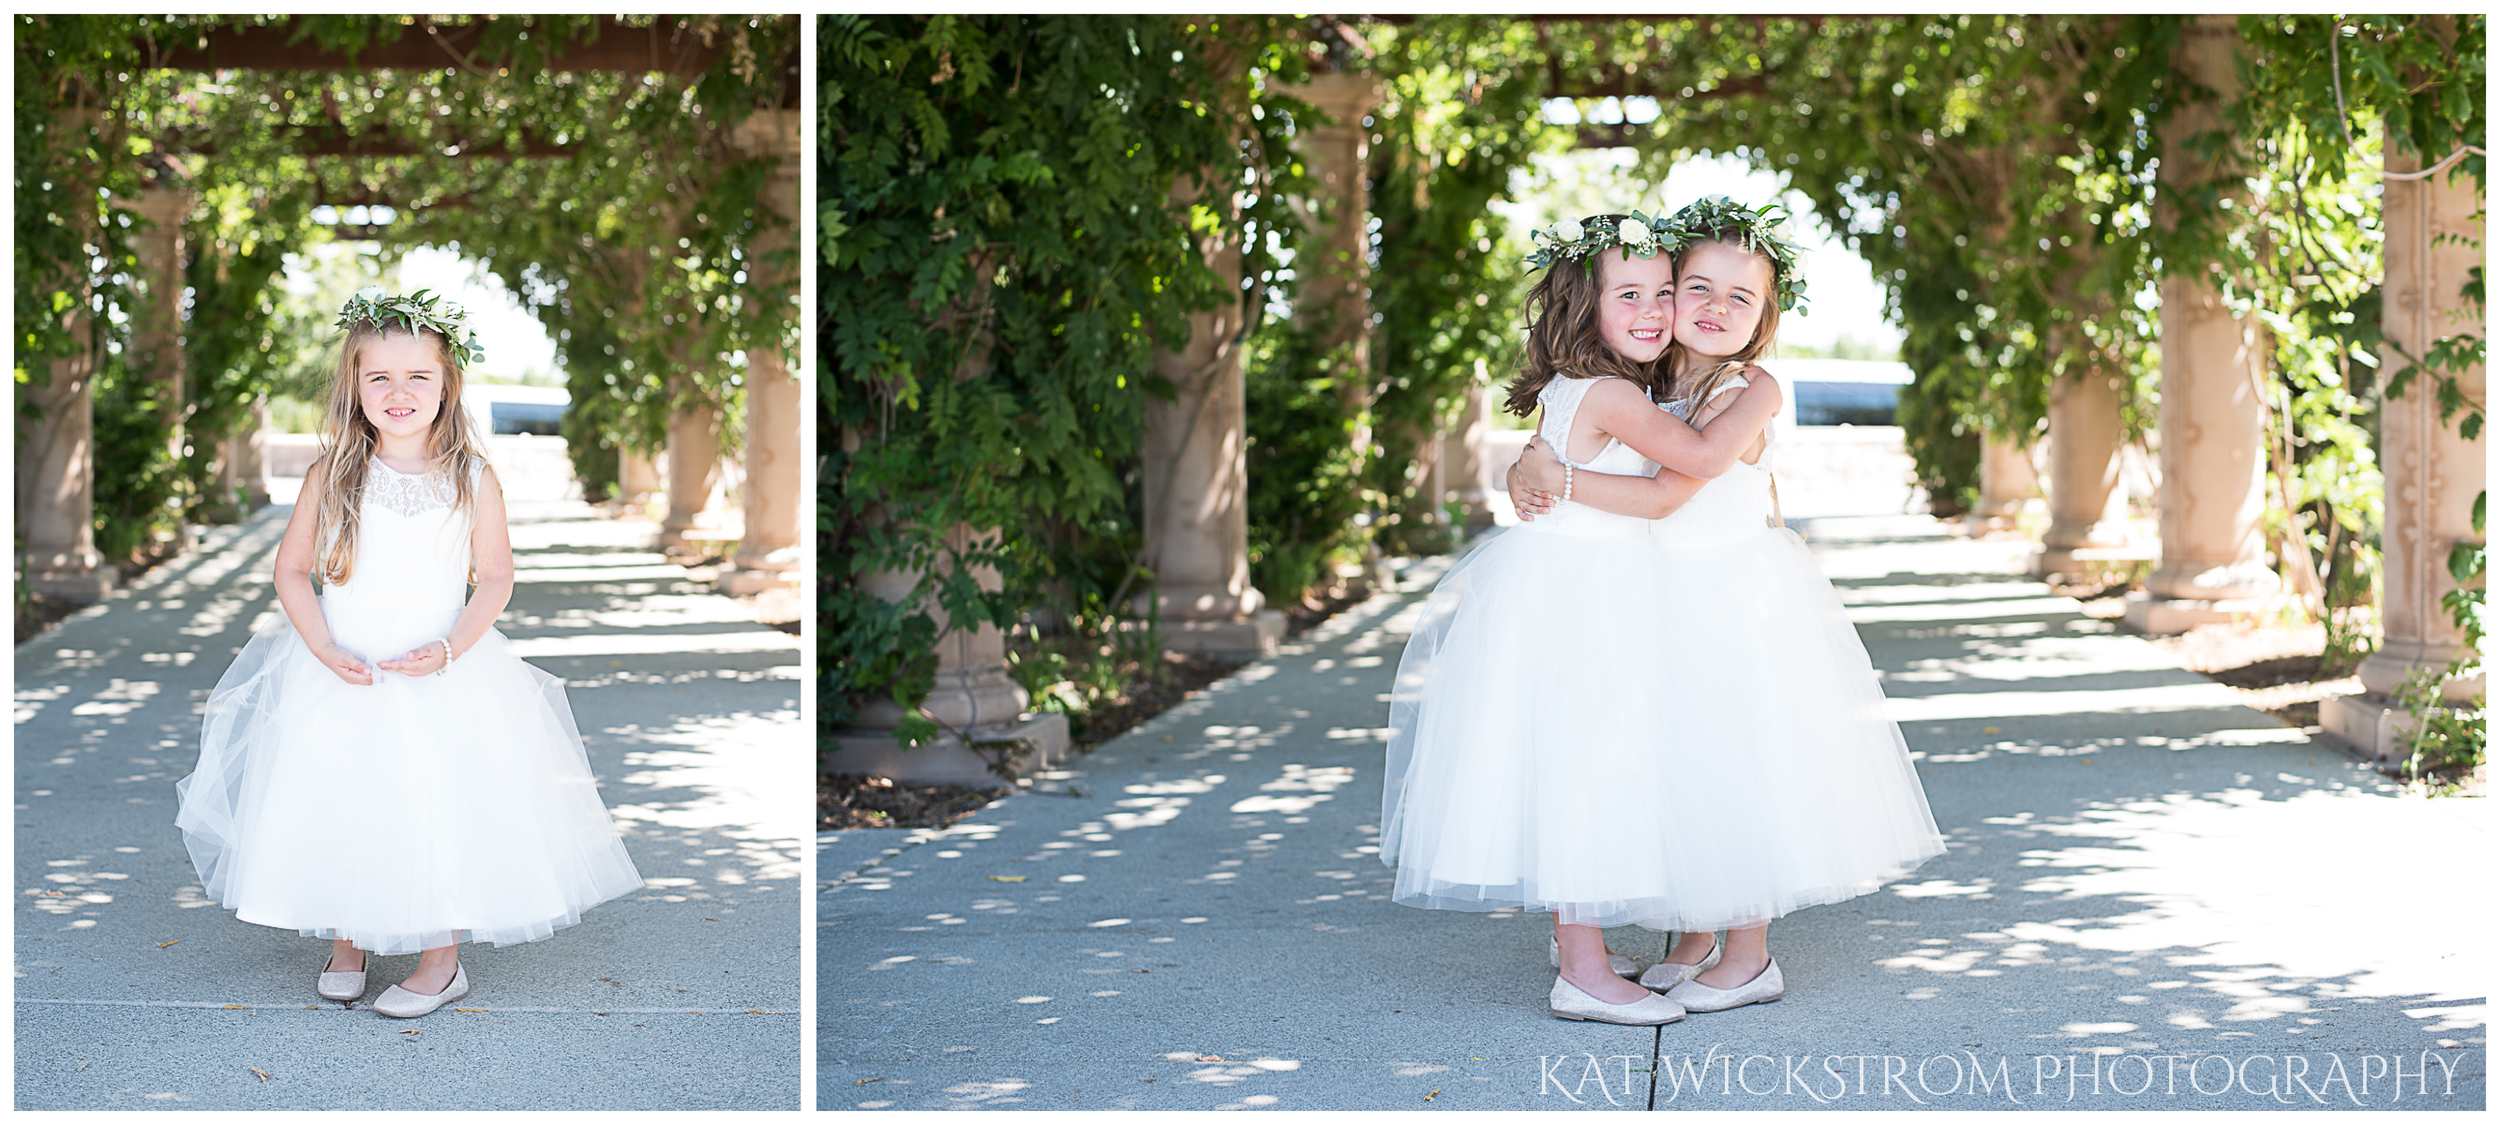 How adorable are these flower girls looking like princesses under the winery vines?!